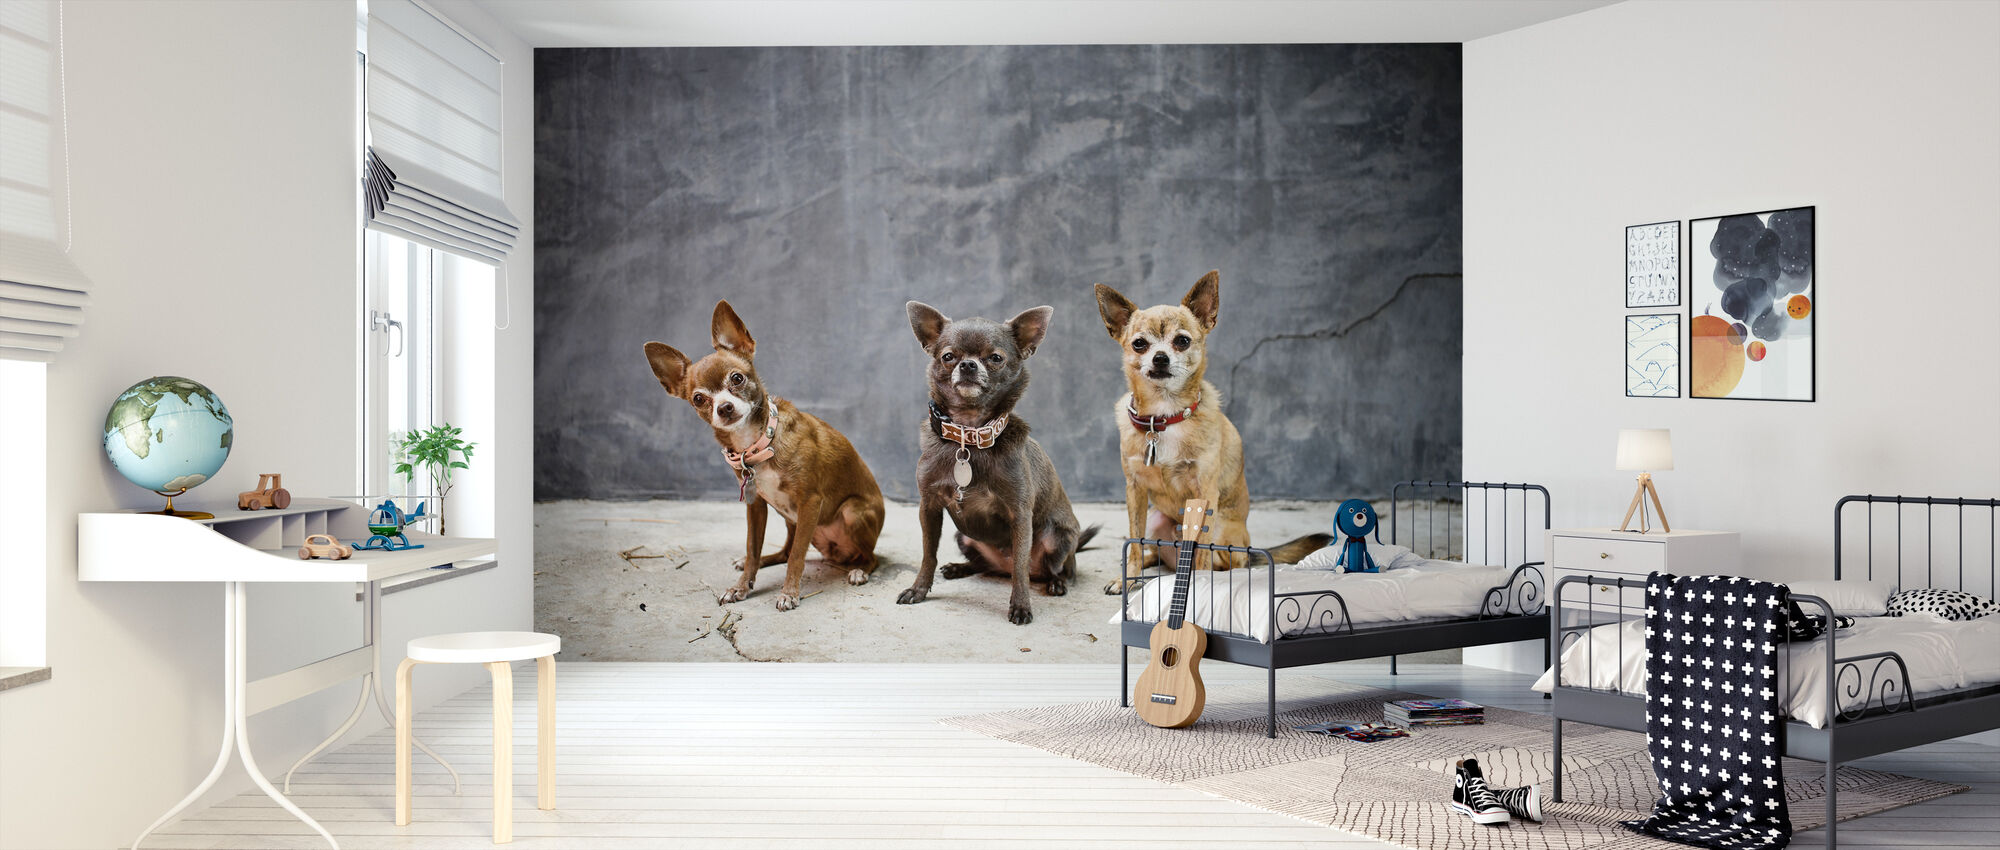 Chihuahua Trio - Wallpaper - Kids Room